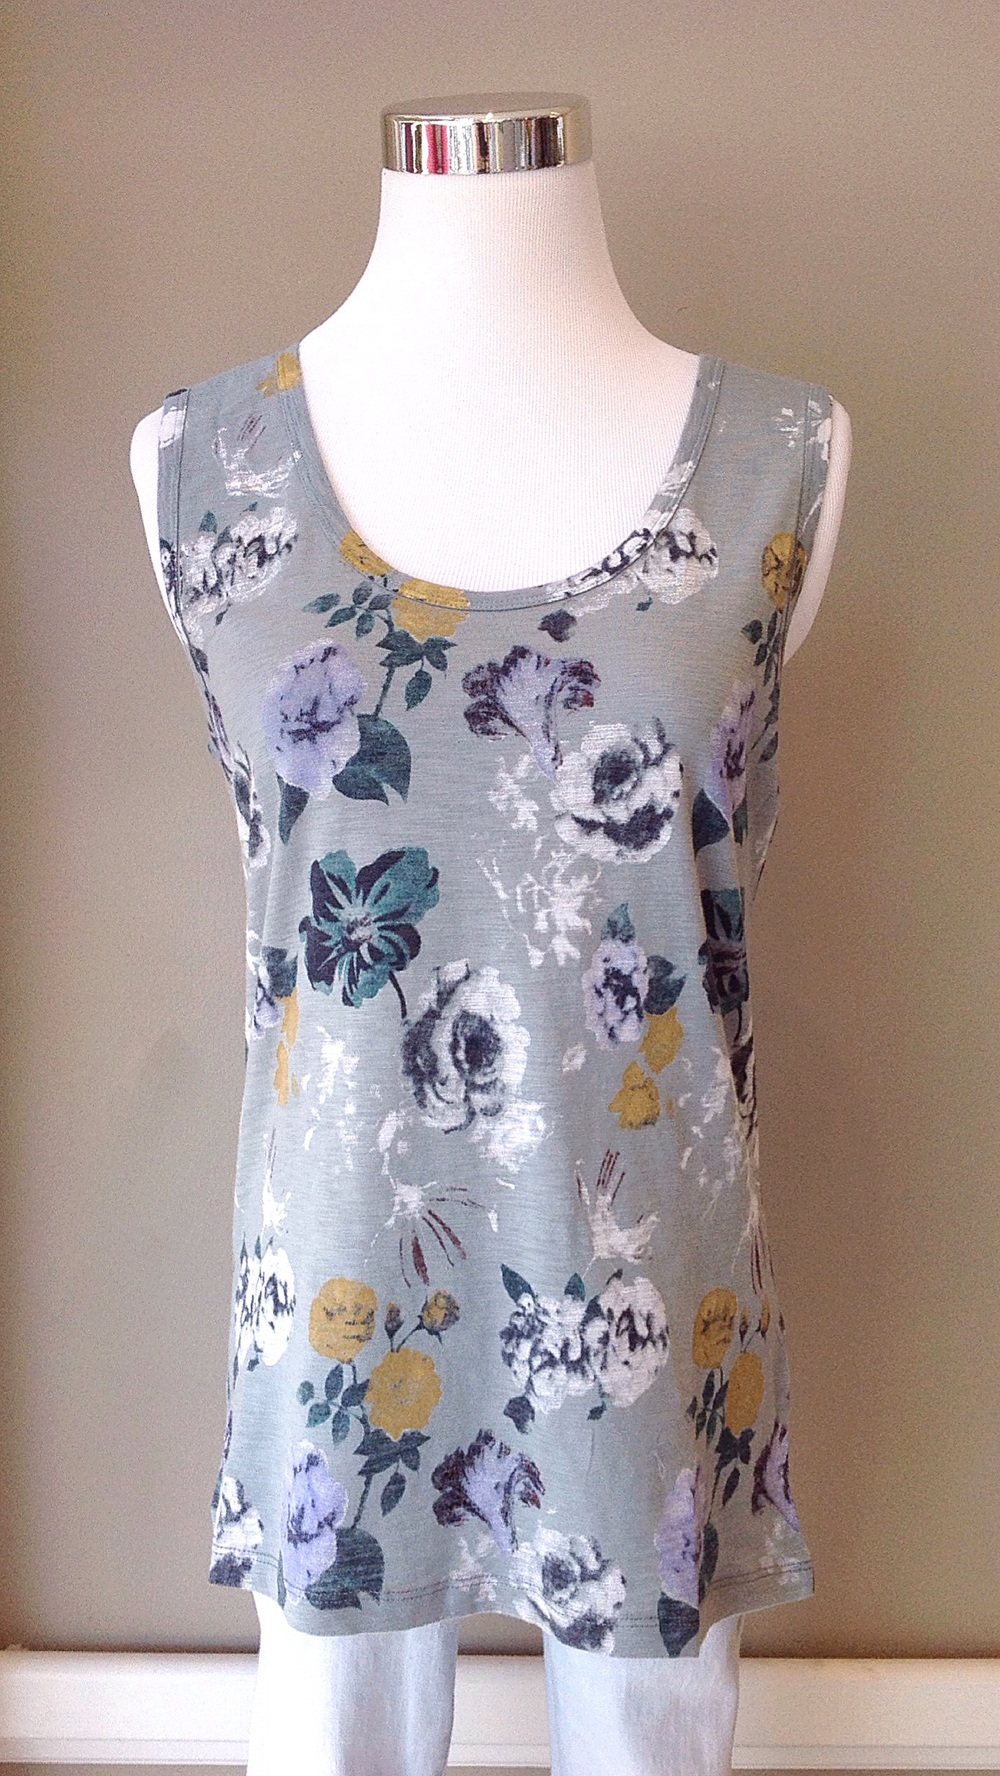 Cotton floral tank in mint/multi, $32